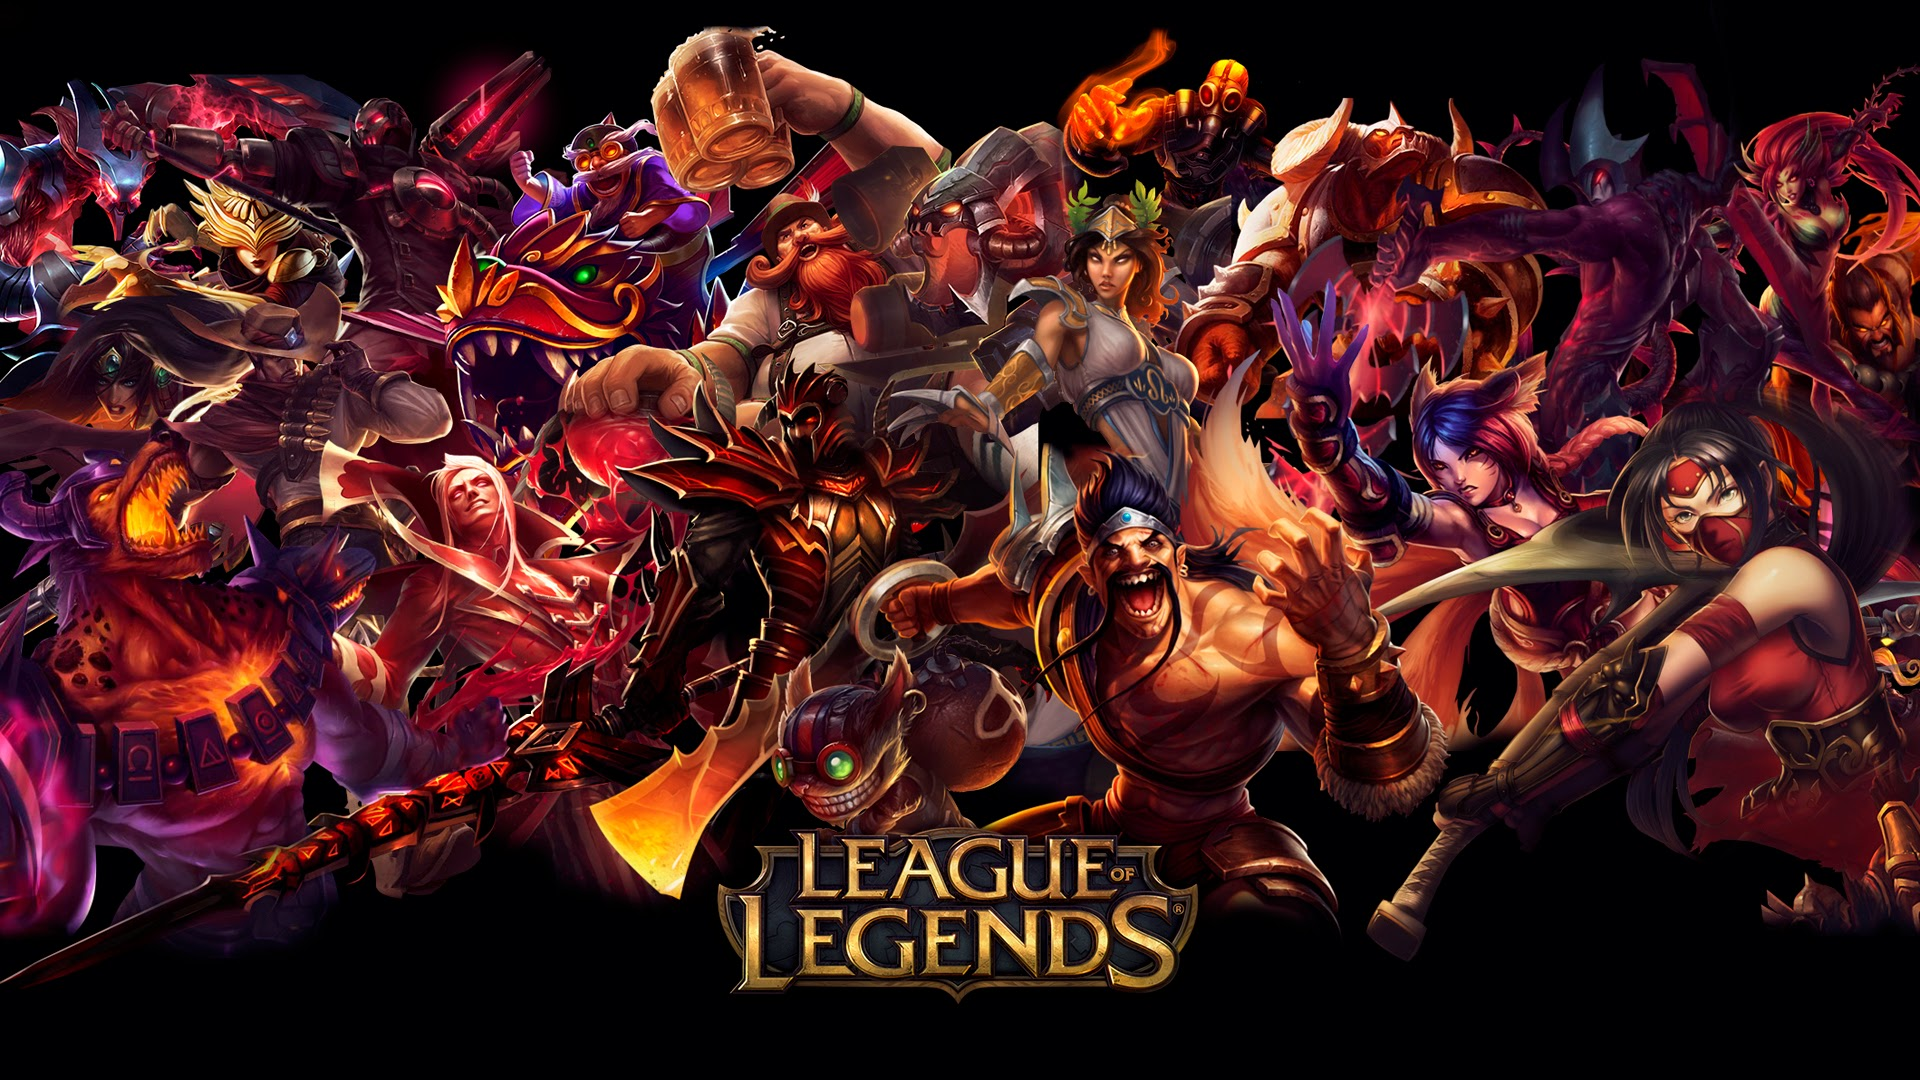 league of legends red hd wallpaper background lol champion 1920x1080 1920x1080